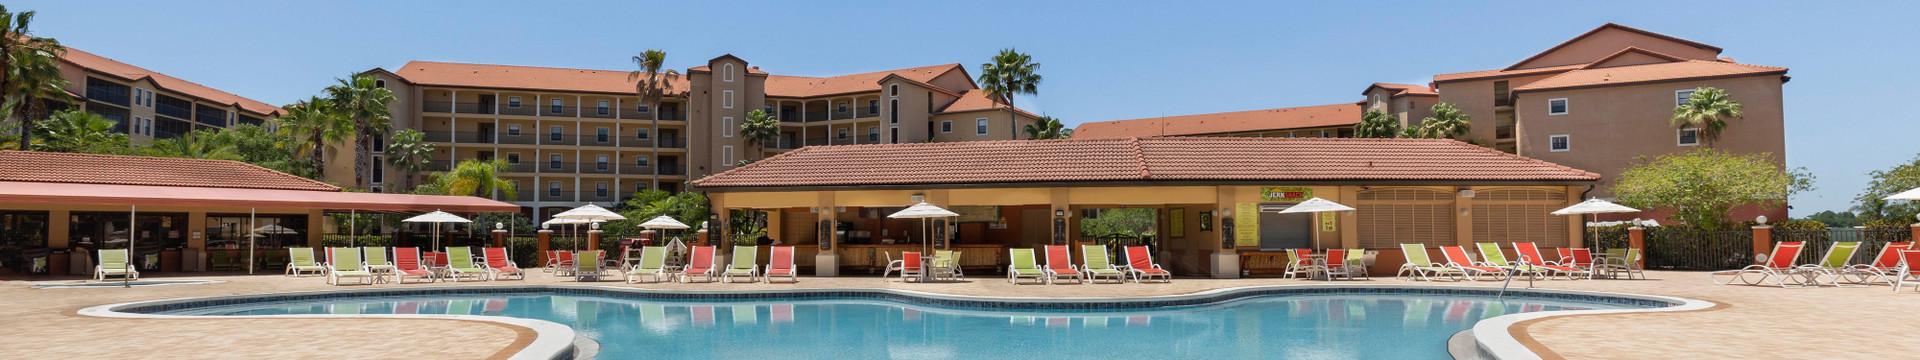 Swimming pool - Westgate Resorts